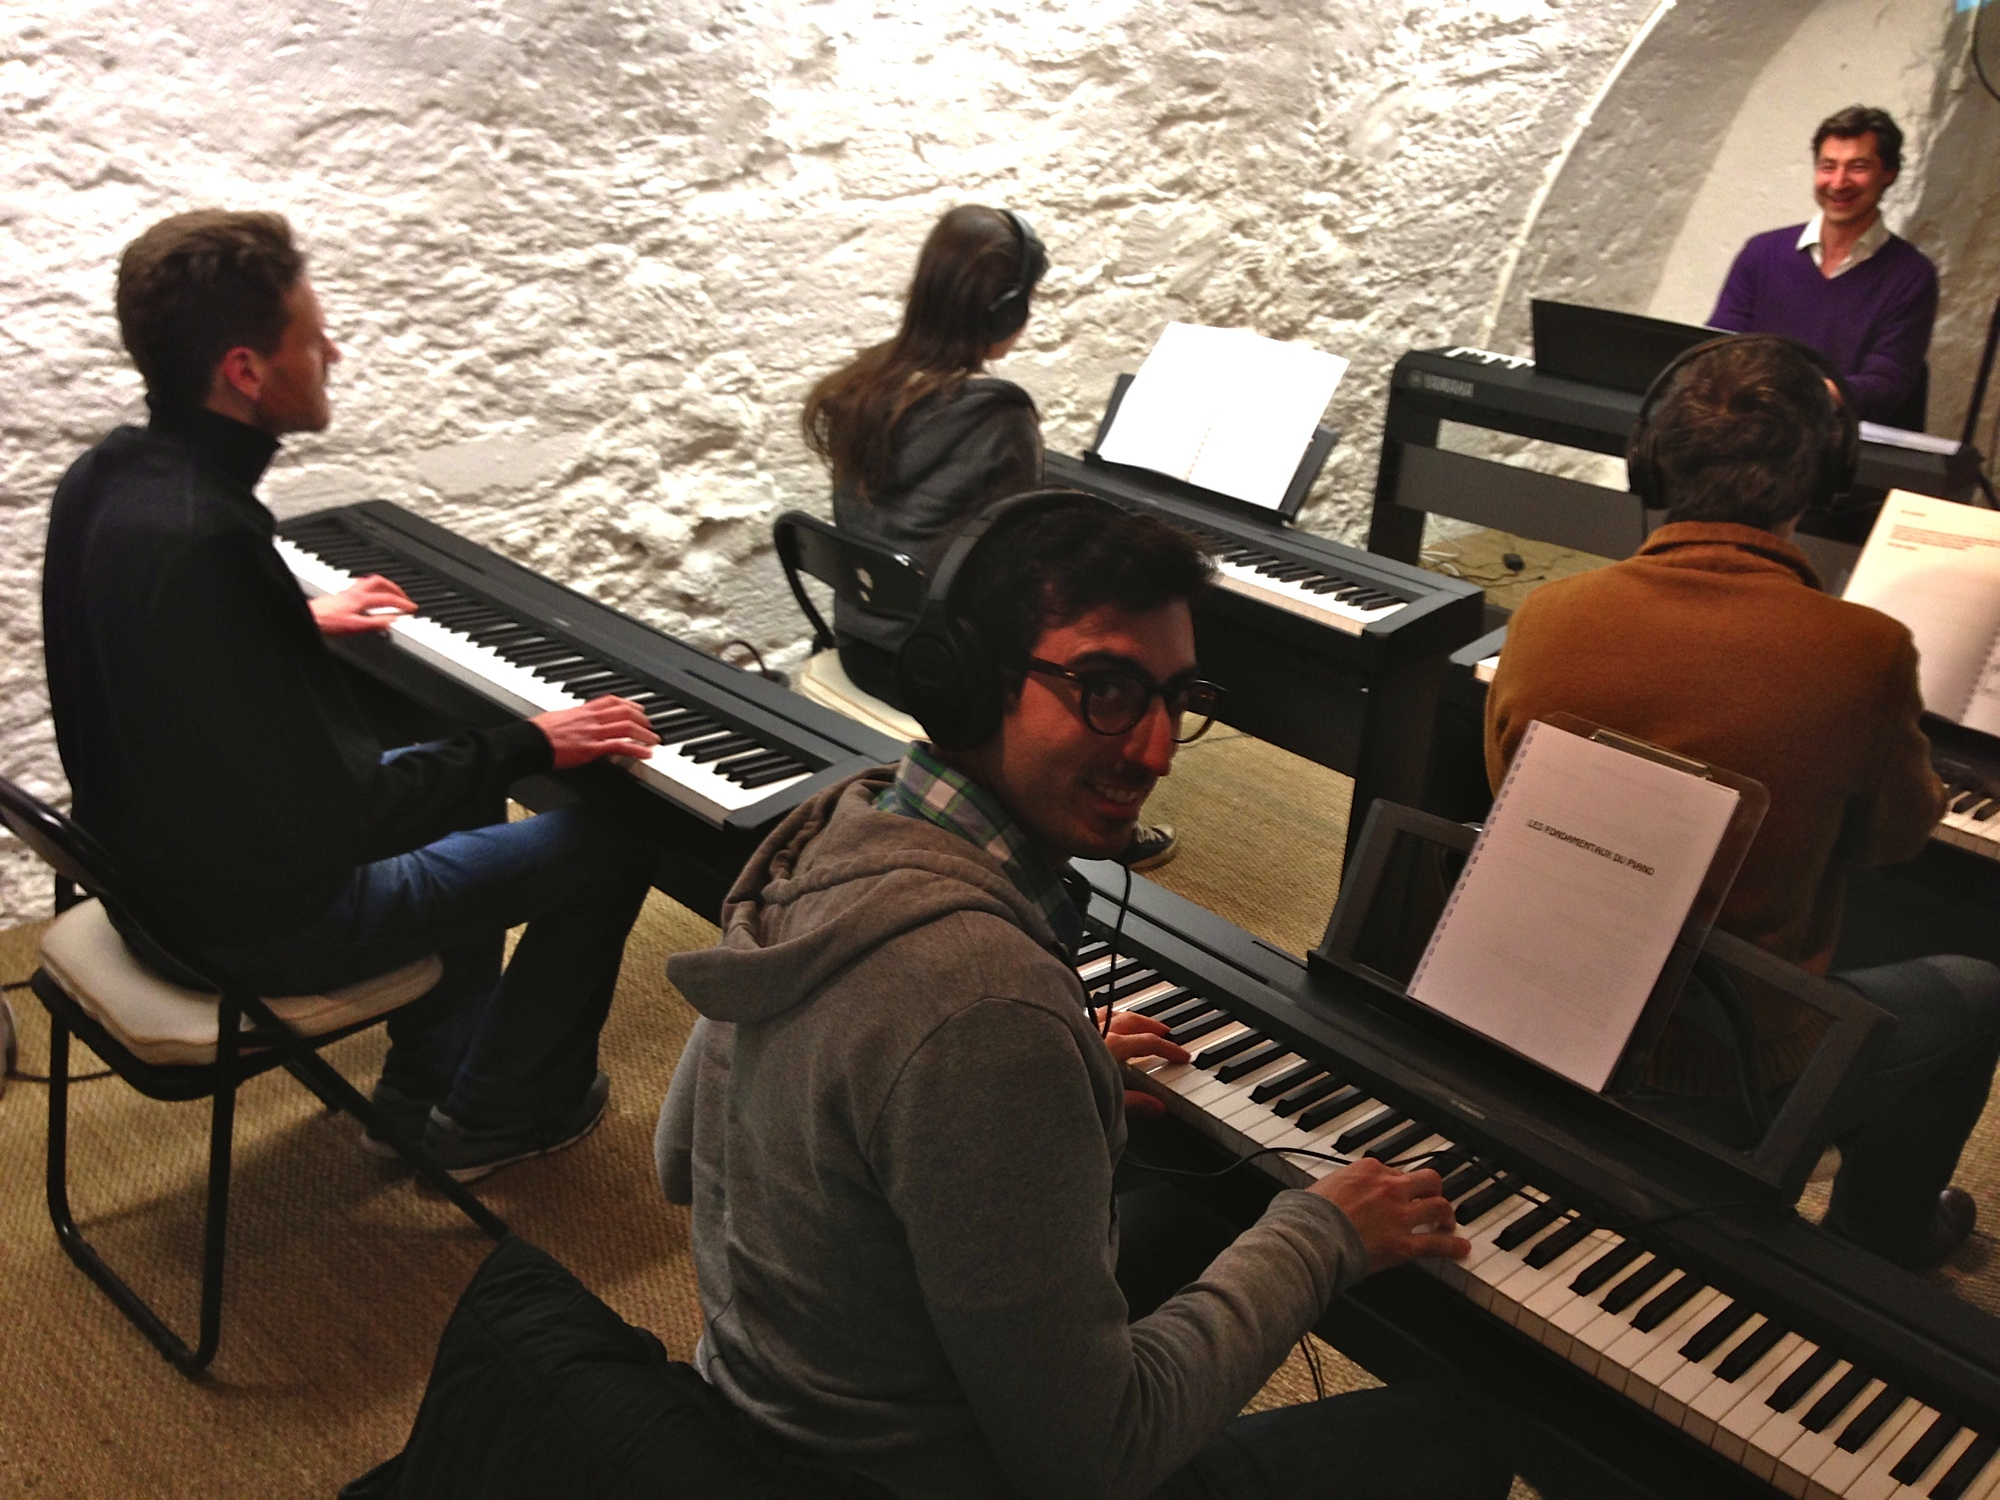 Cours de Piano à Paris